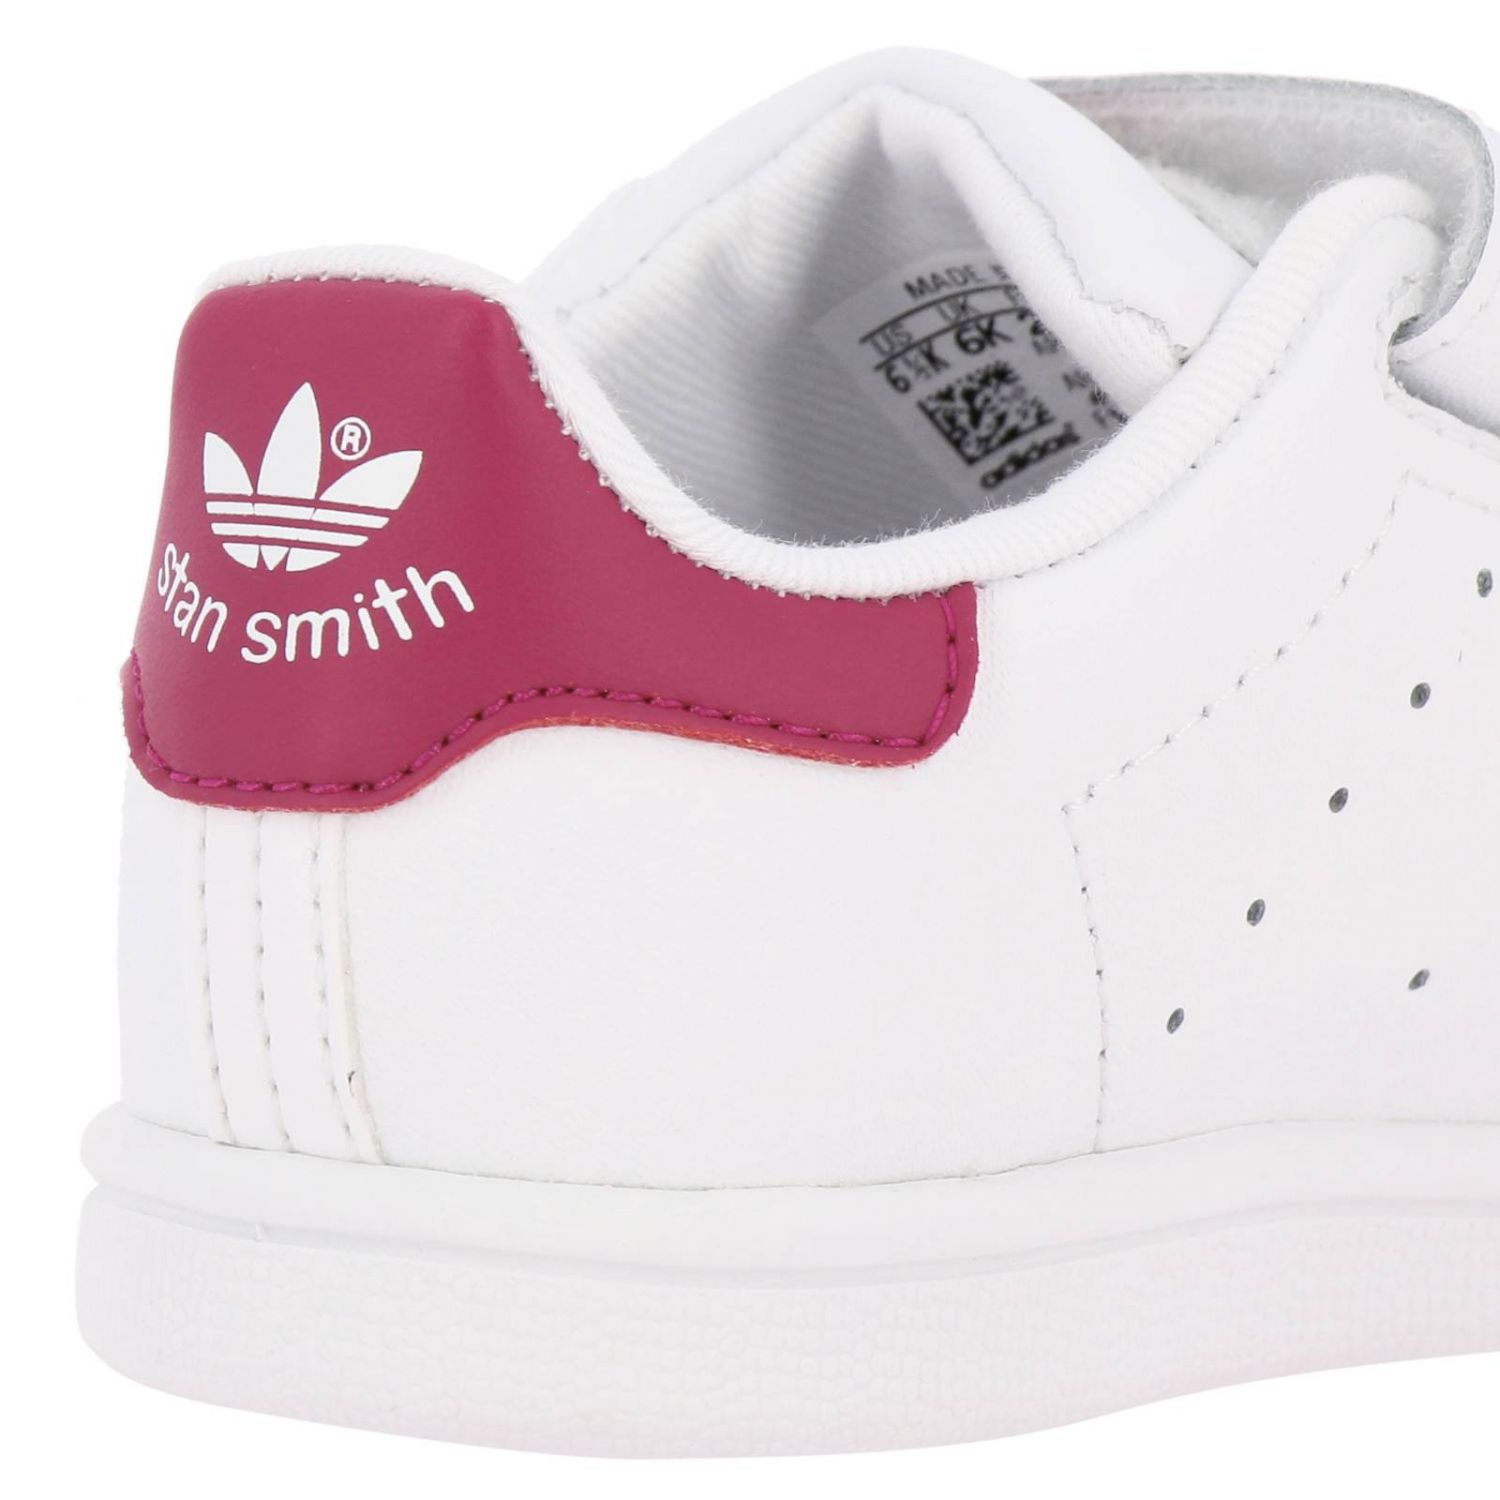 Zapatos Adidas Originals: Zapatillas Stan Smith Adidas Originals de cuero liso con tacón de color blanco 4